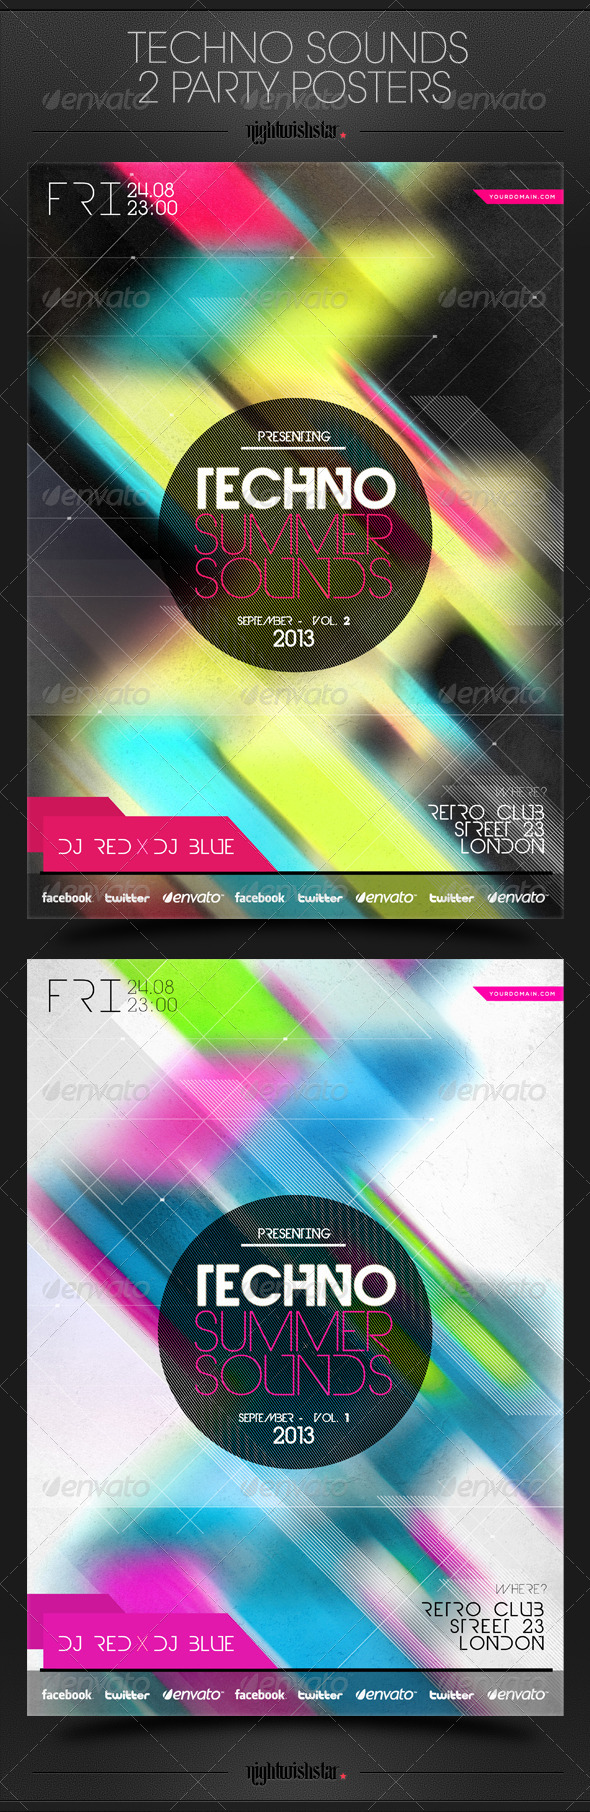 GraphicRiver Techno Sounds Party Poster 6394226